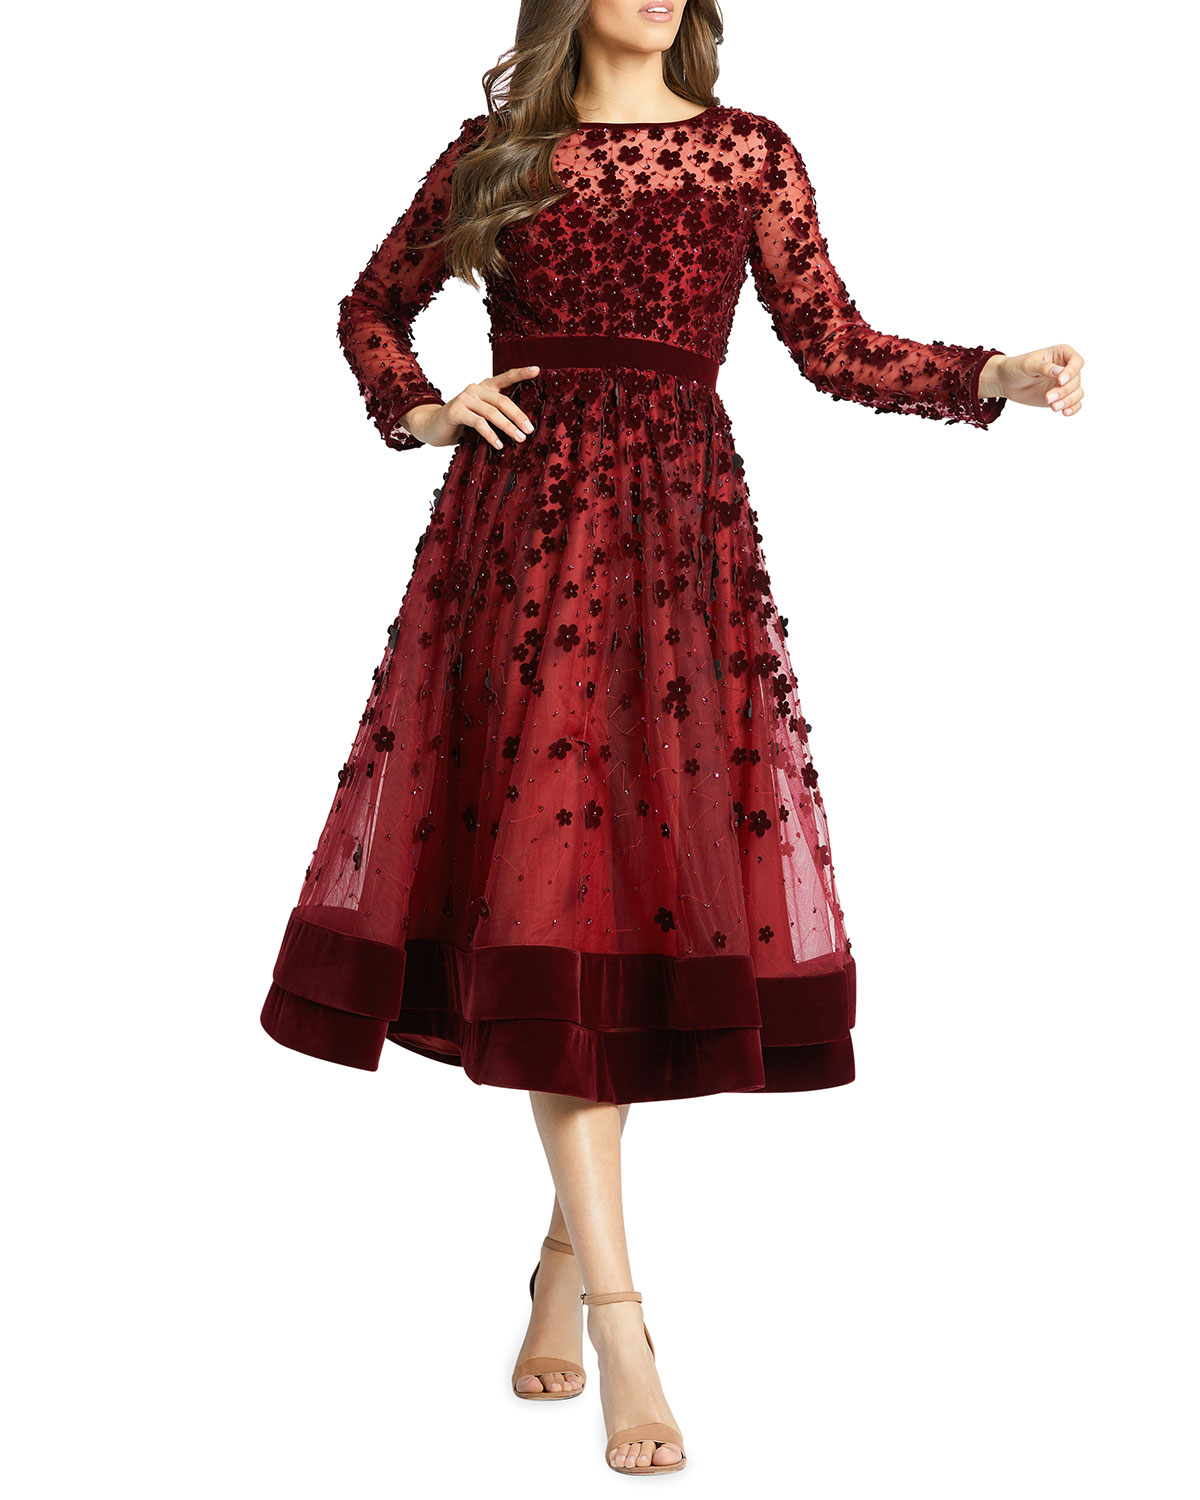 Long Sleeve Tea Length Floral Applique Cocktail Dress by Mac Duggal